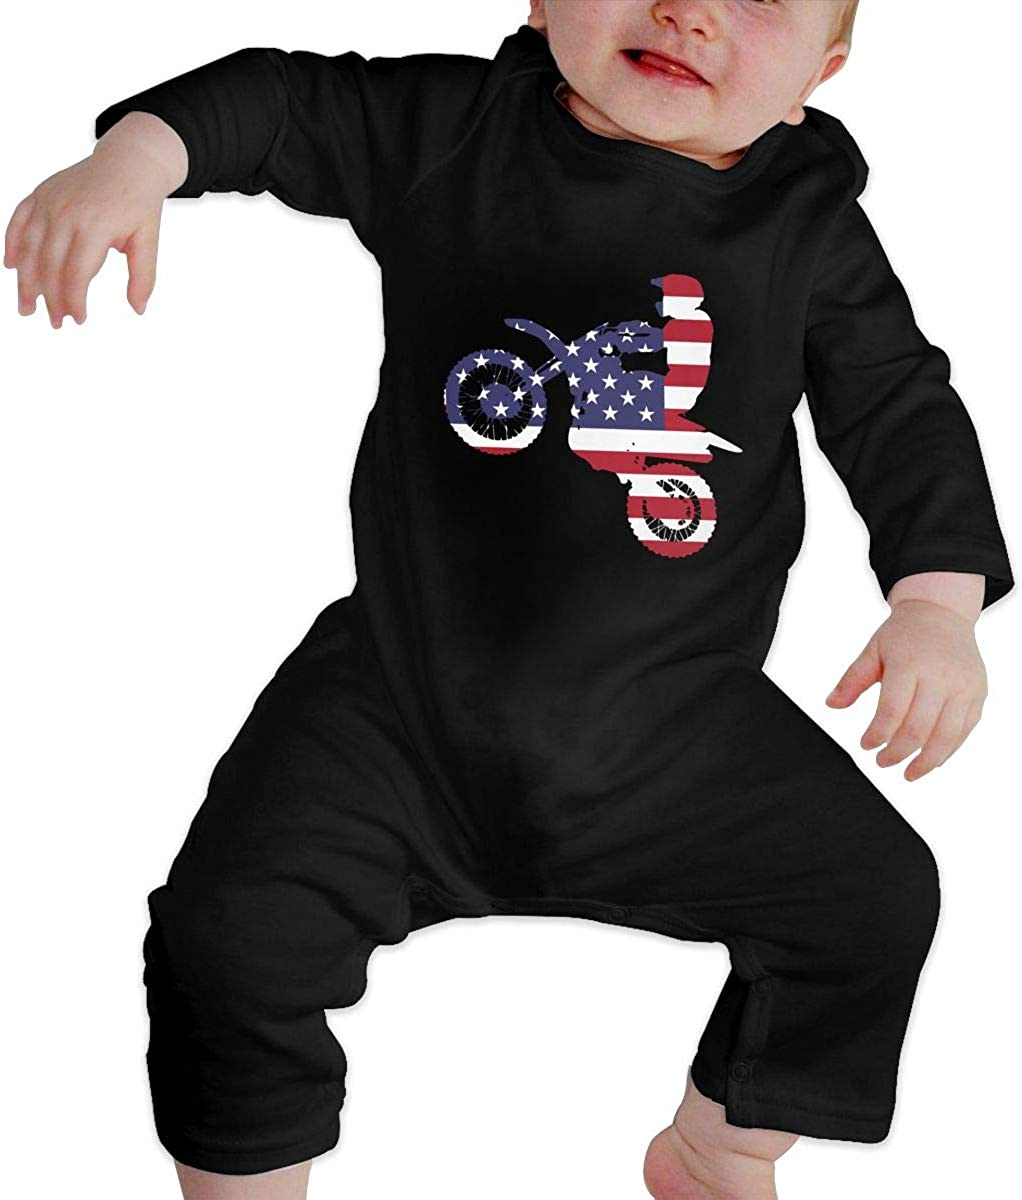 Dirt Bike Organic One-Piece Bodysuits Coverall Outfits Baby Girls Romper Jumpsuit